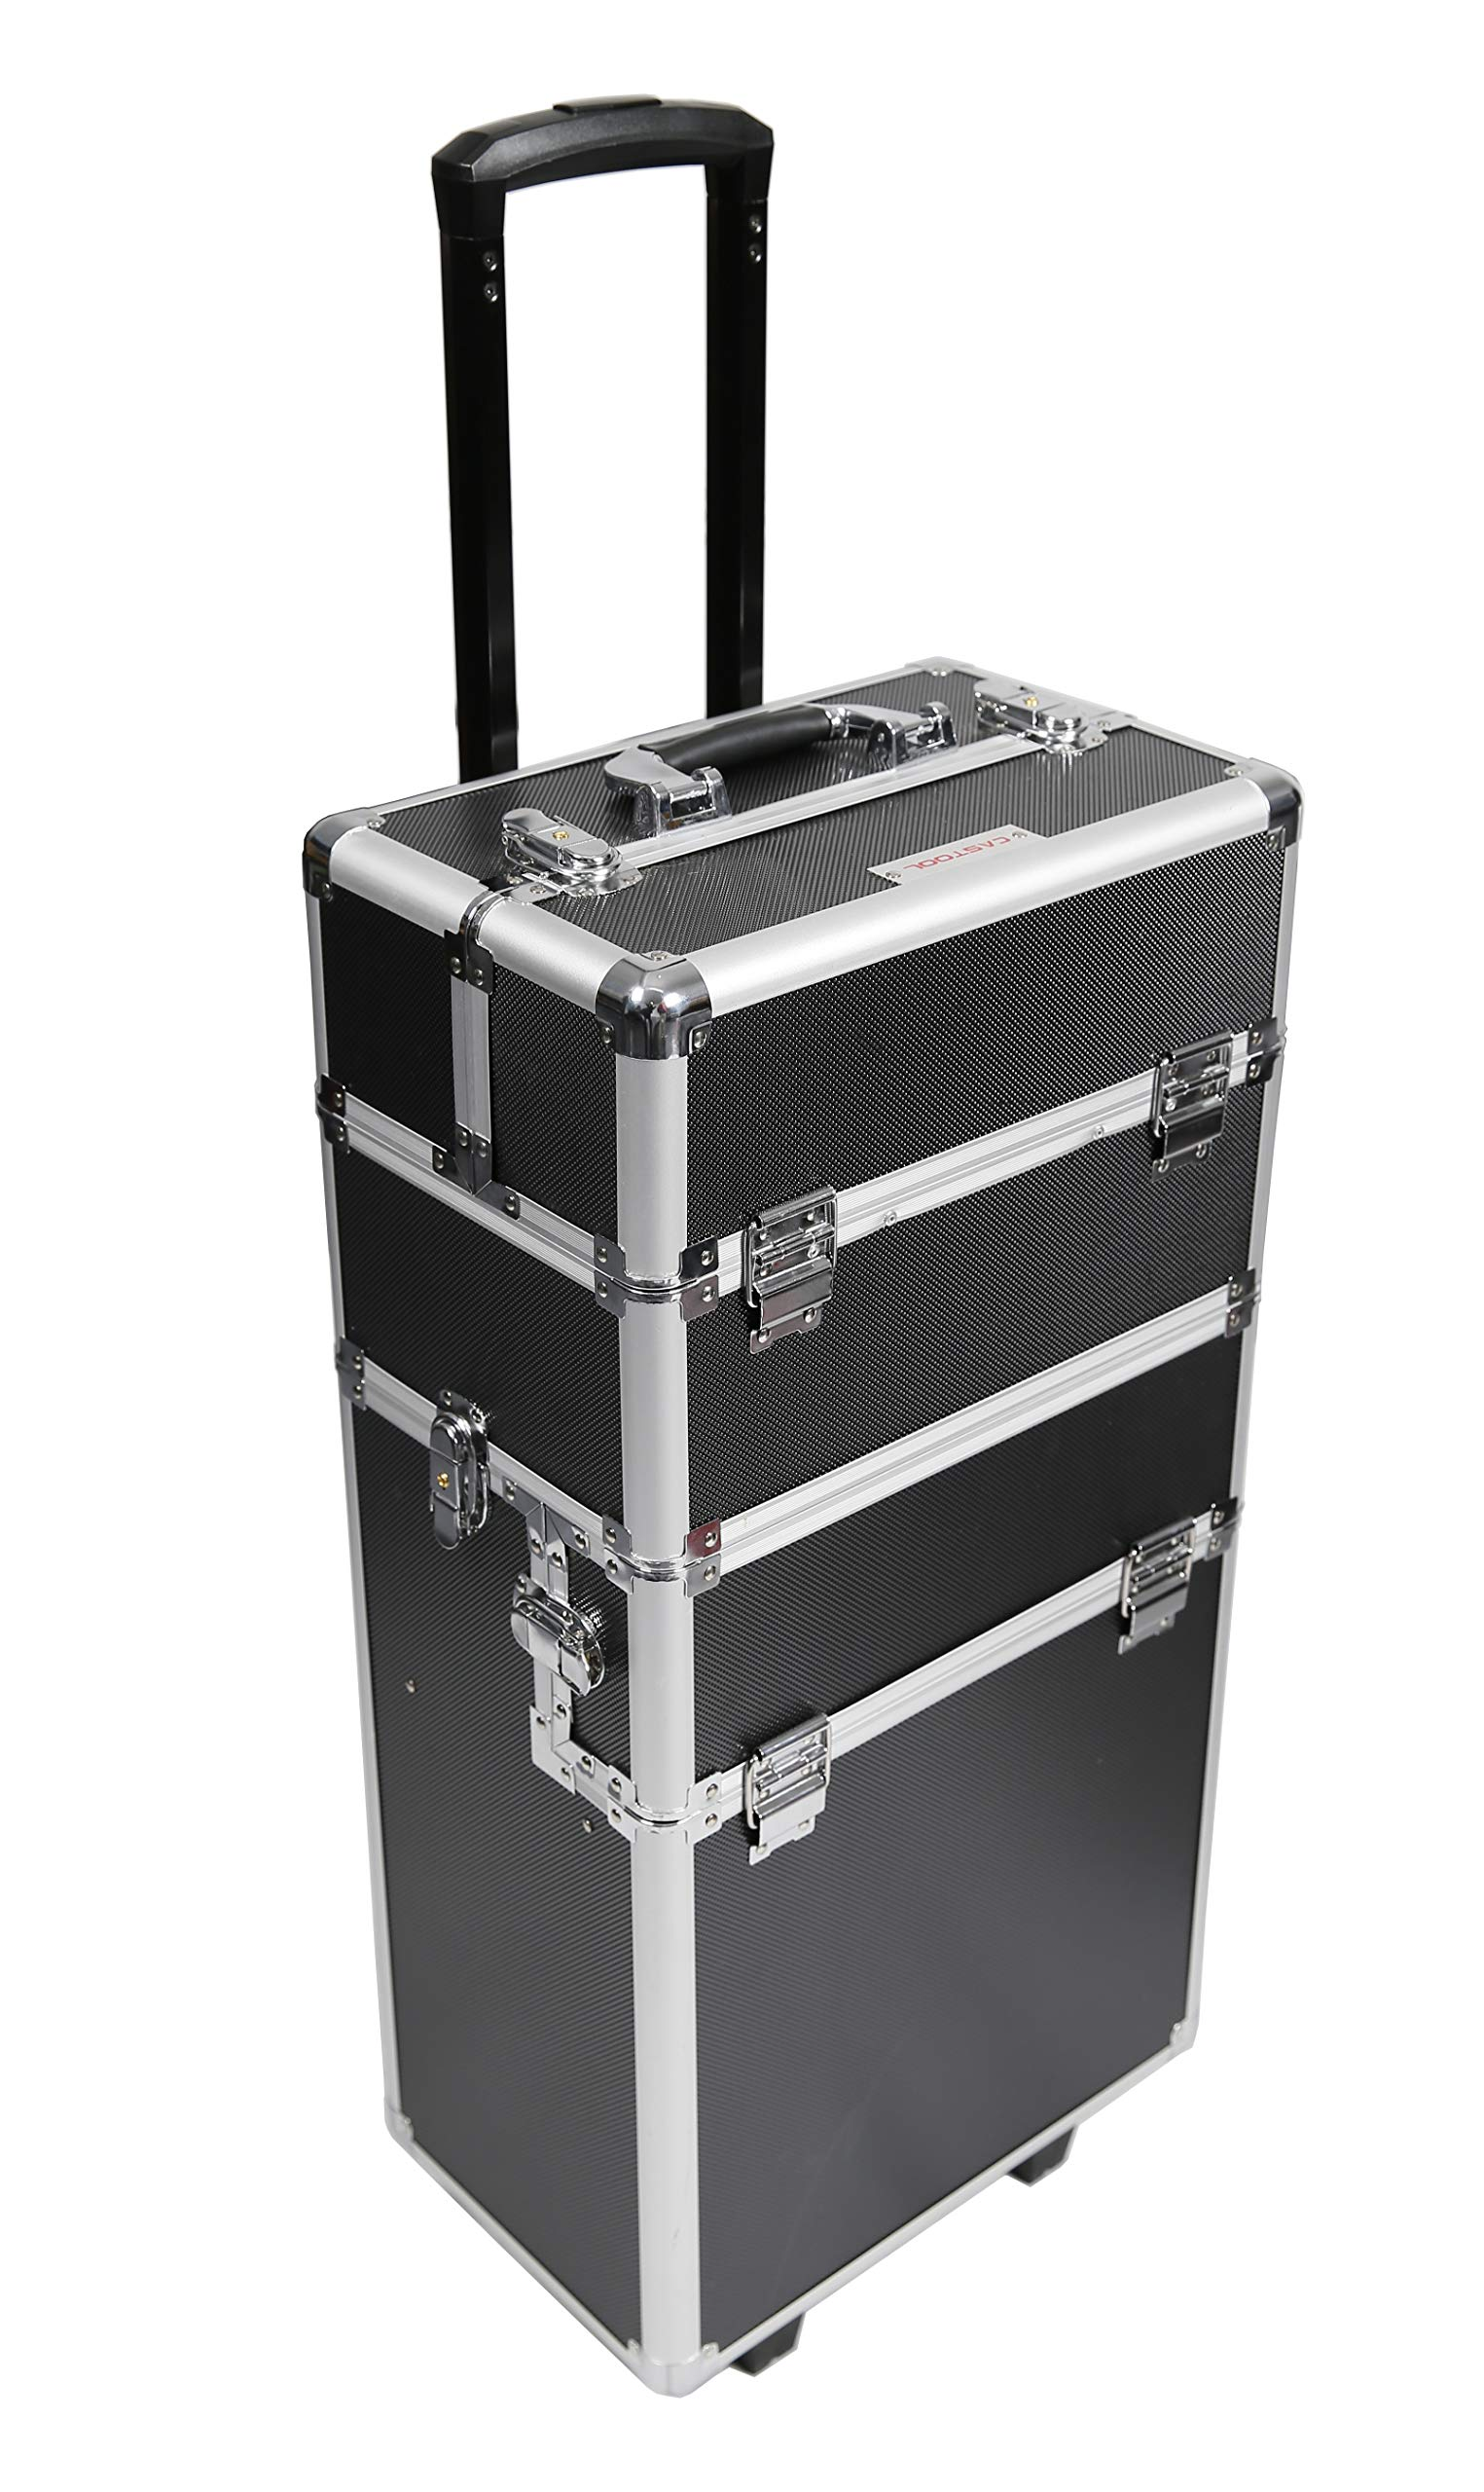 360-Degree Aluminum Rotating Castors Cosmetic Case Trolley Rolling Makeup Train Case Barber Salon Lockable Travel Case, with Sliding Drawers,Removable Dividers Black by CASTOOL